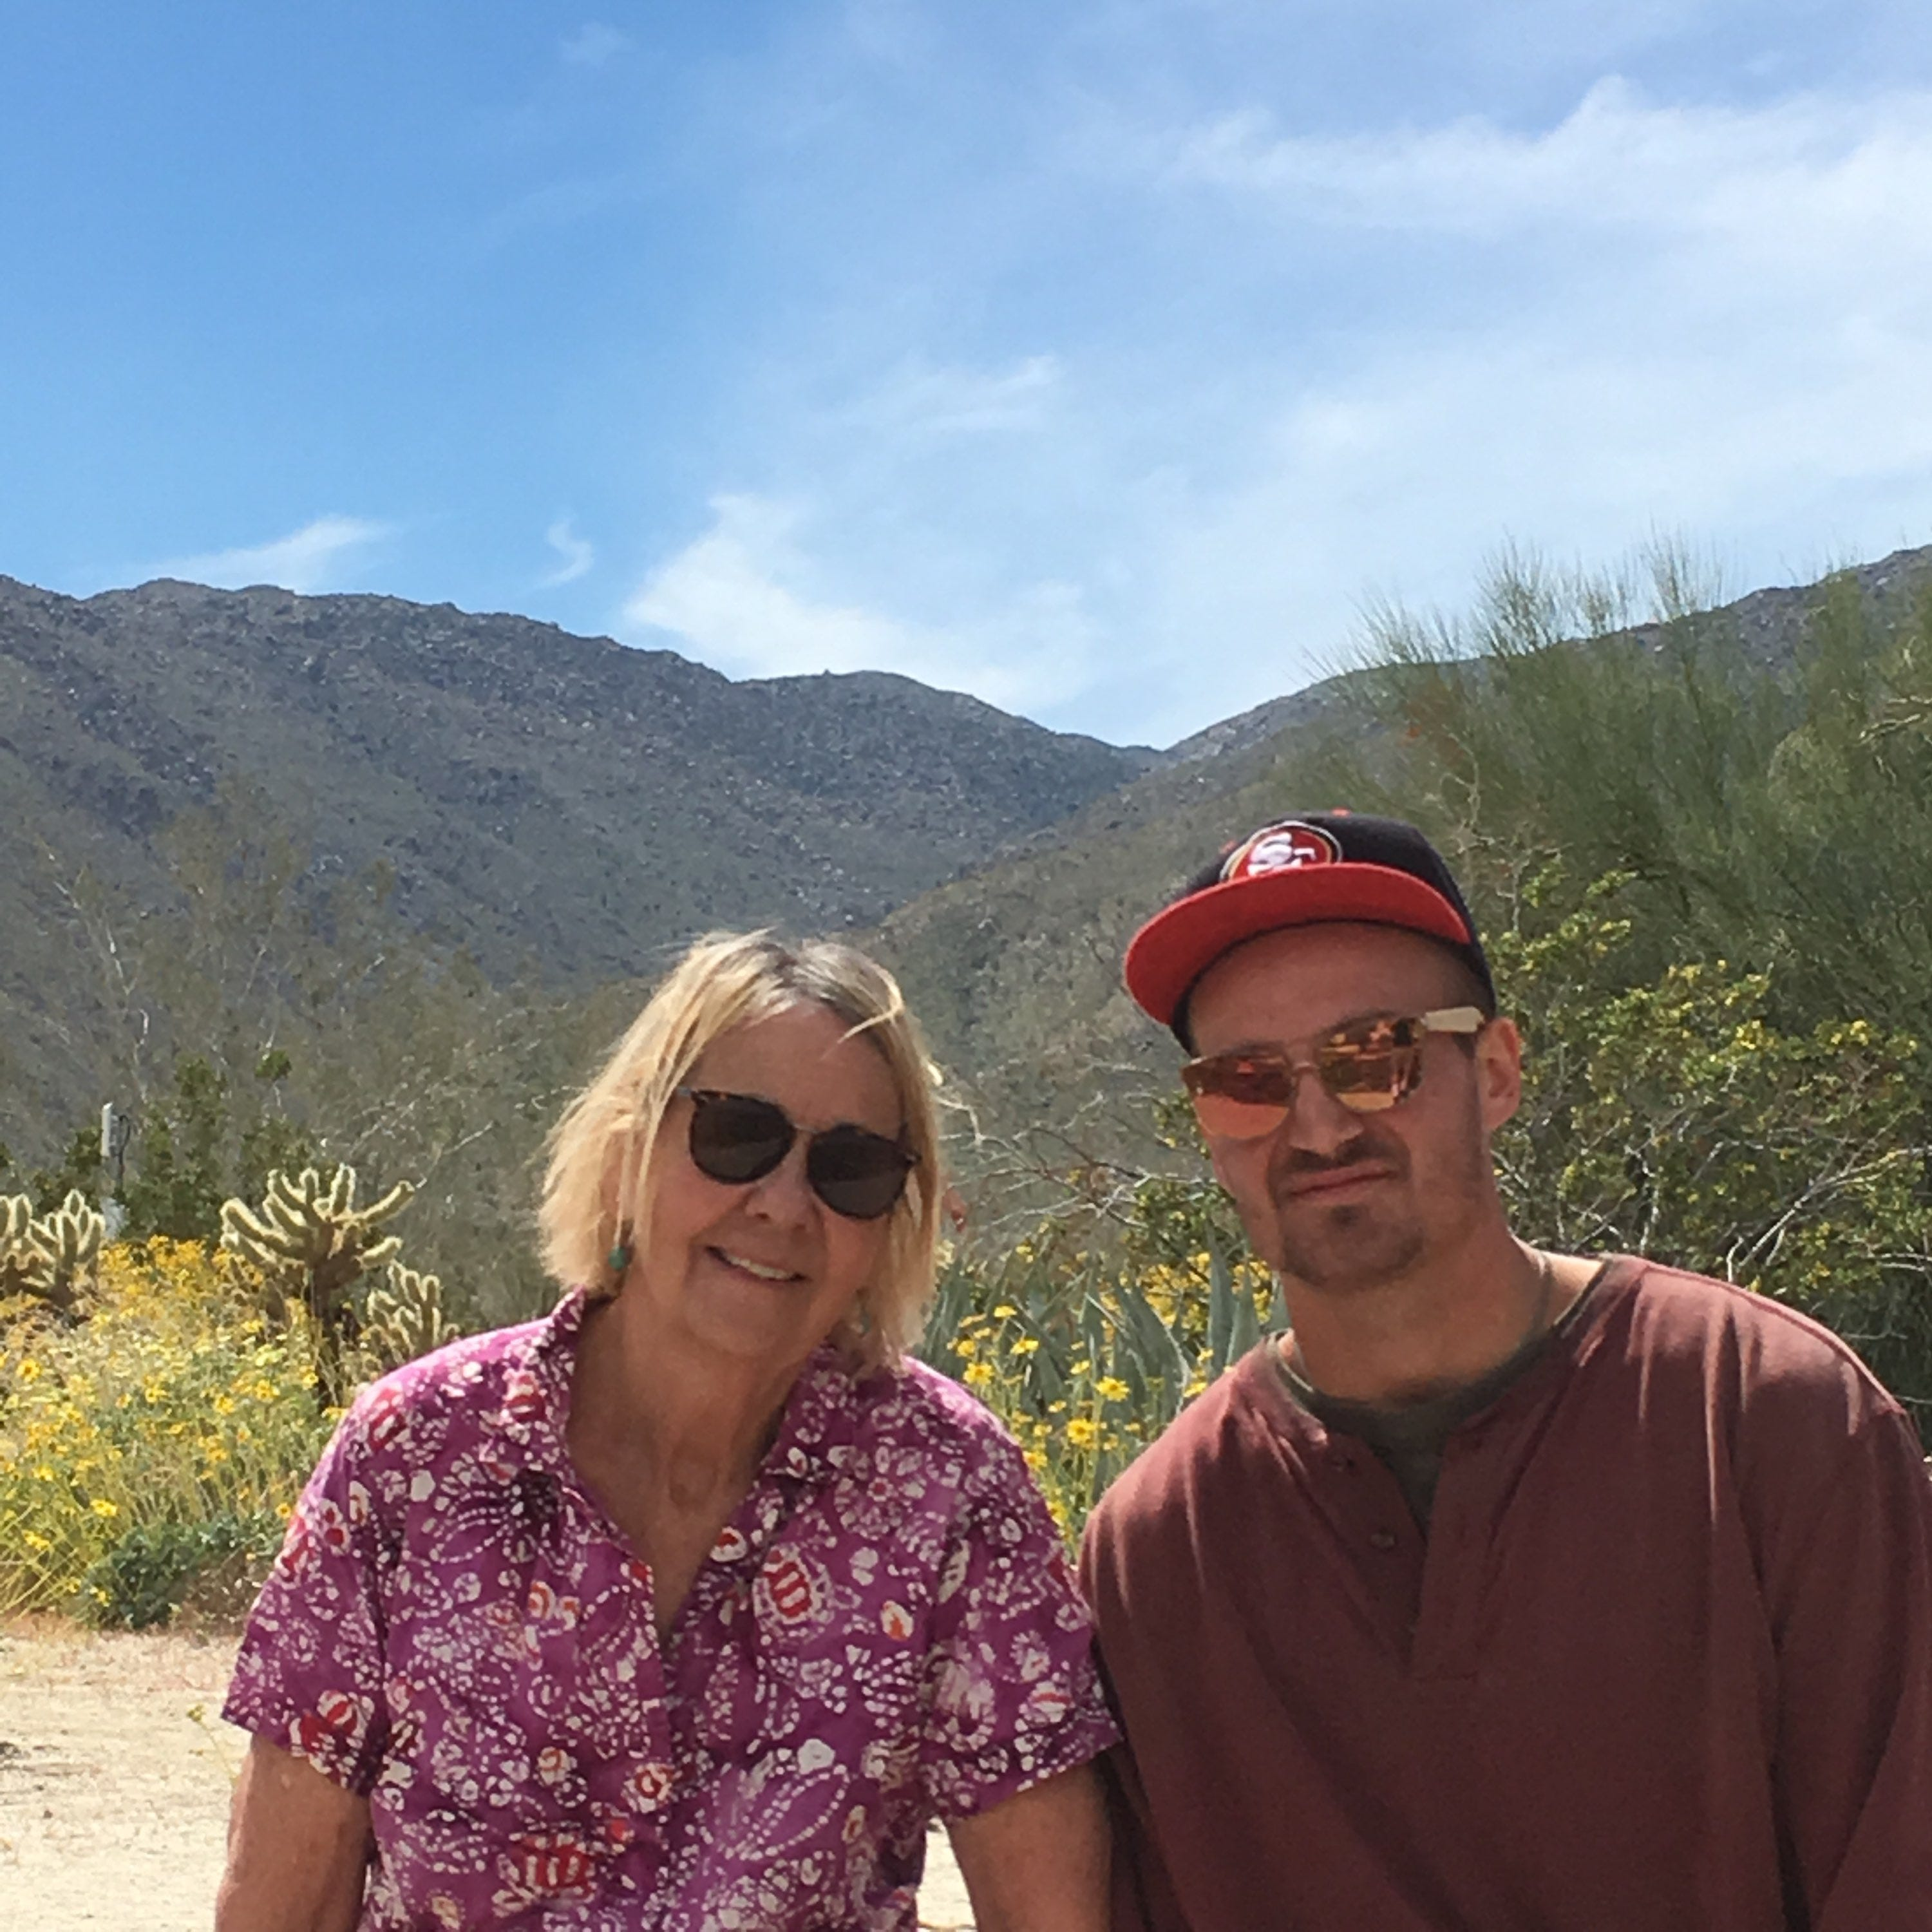 Cheryl Fullerton and her son, Tyler Fullerton, during a family trip to Anza-Borrego Desert State Park in 2019.